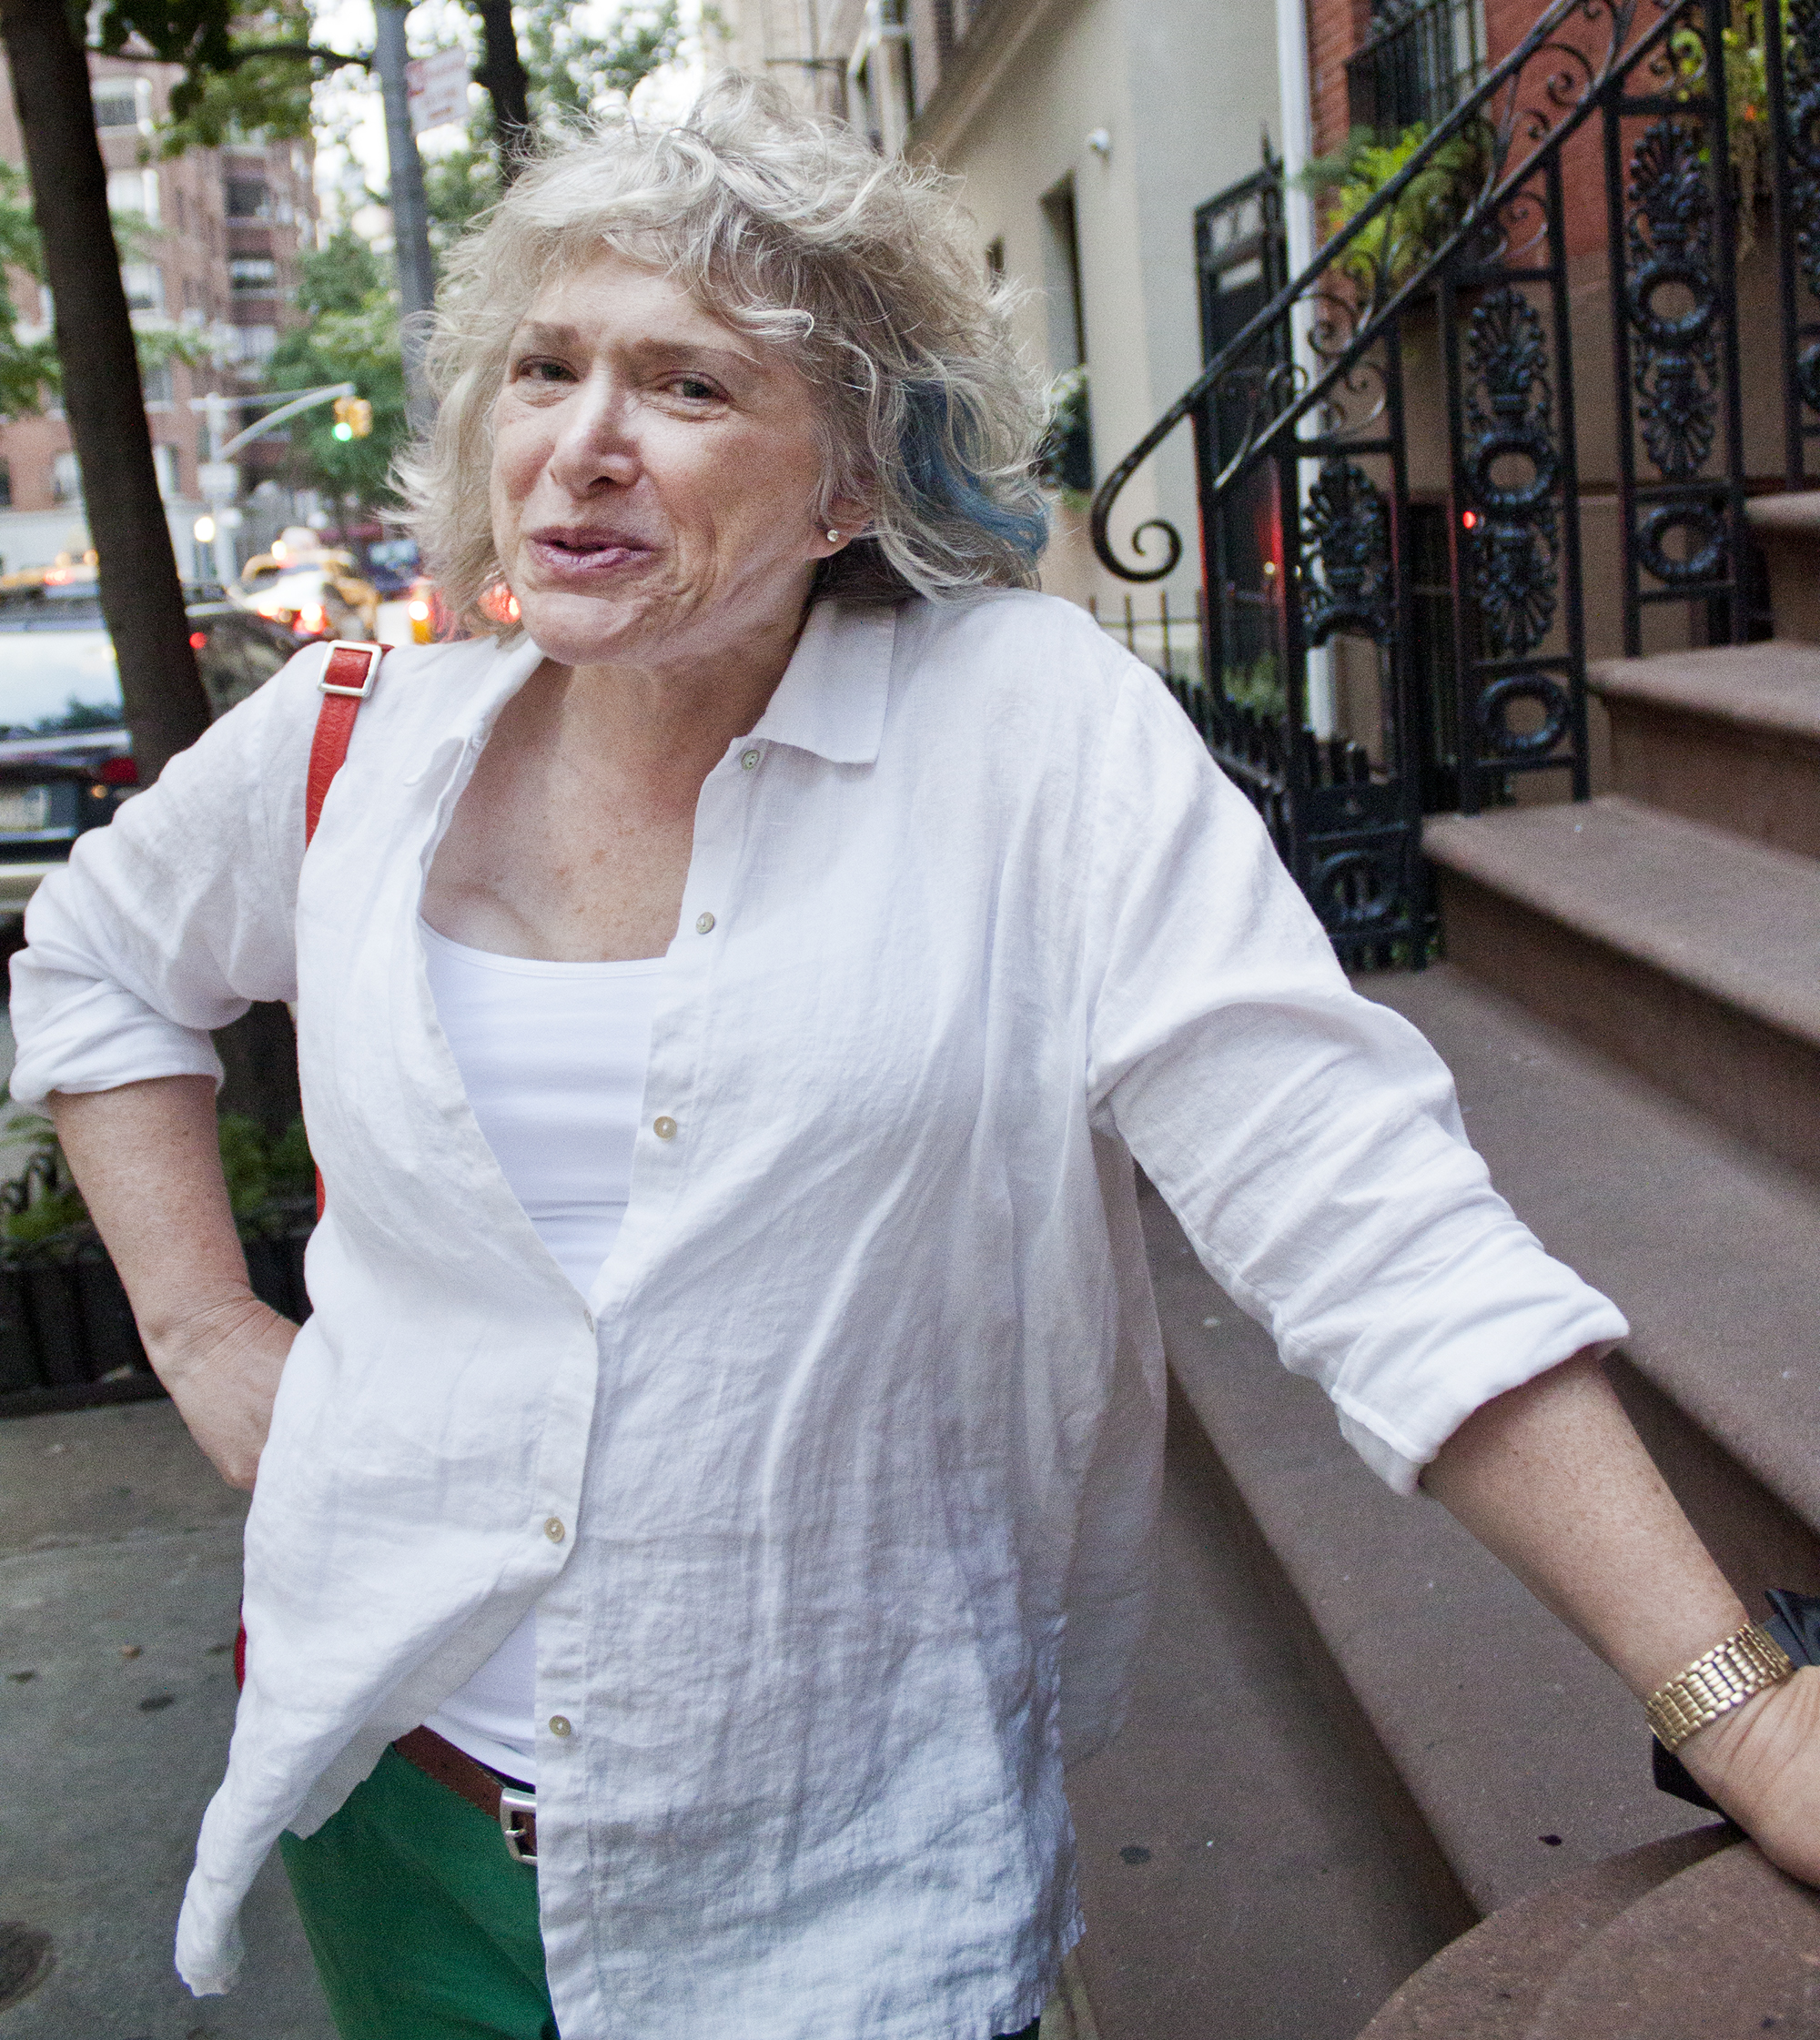 Joyce Wadler pictured in New York, N.Y., on Aug. 11, 2012. (Steve Silva)